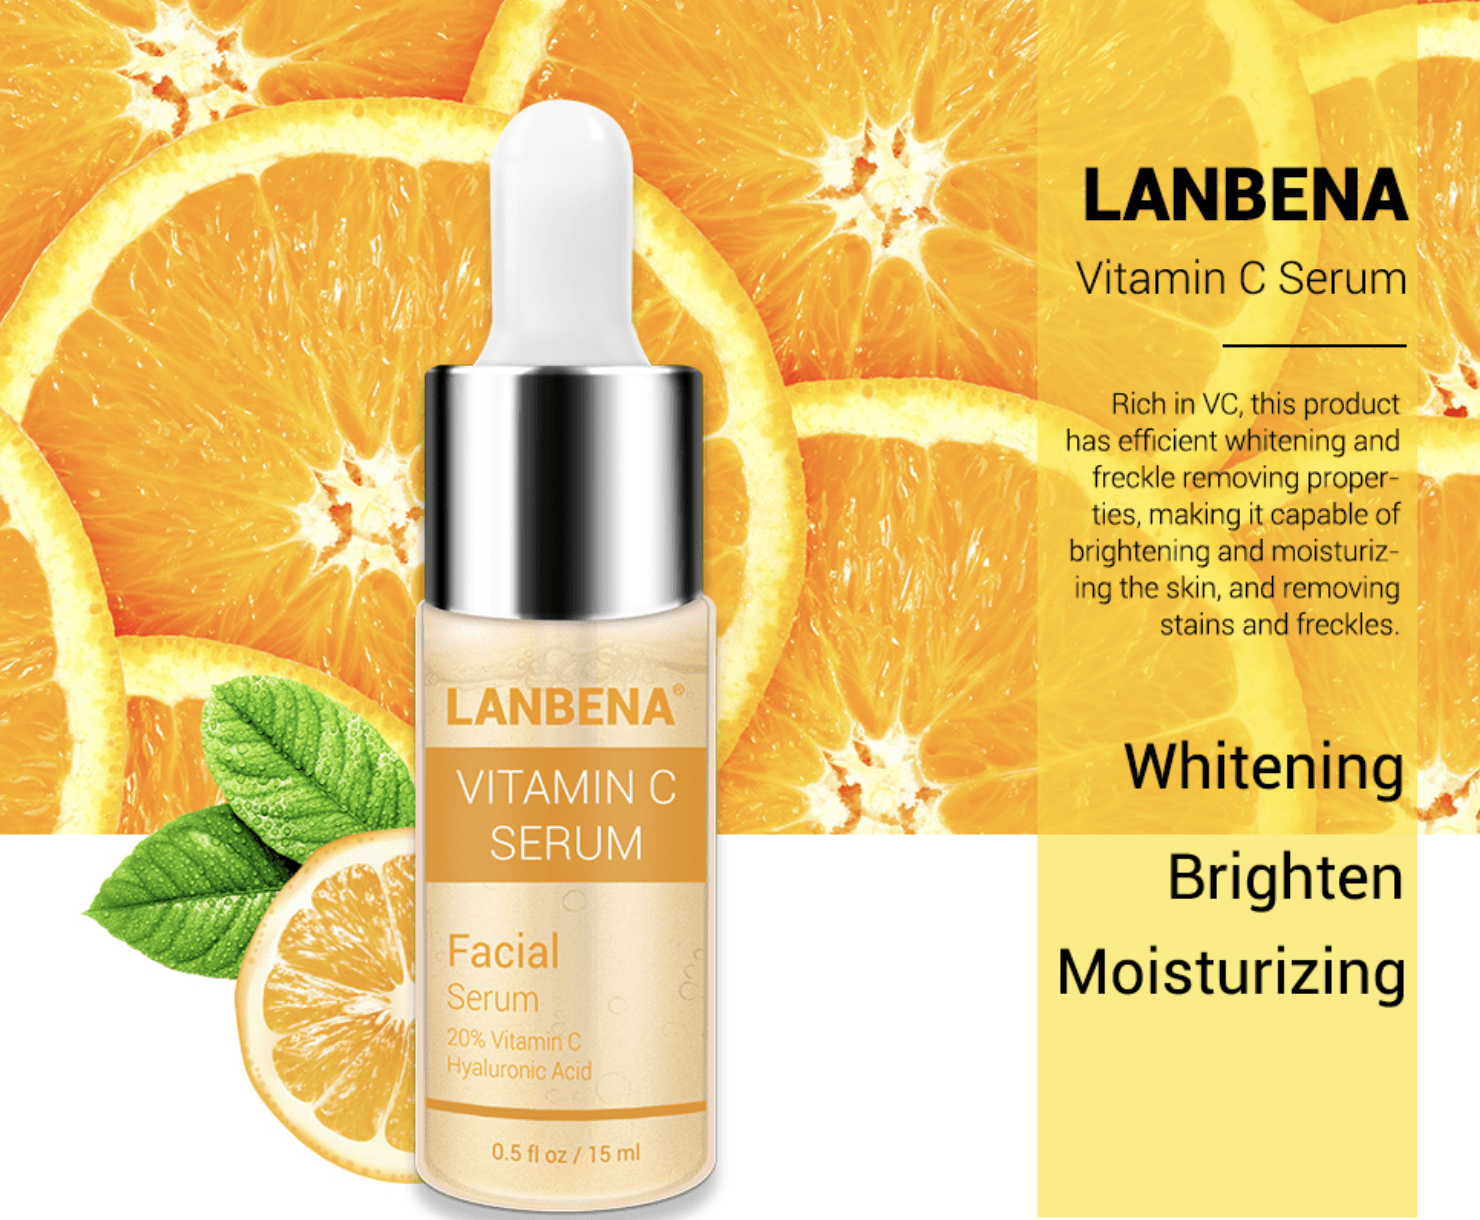 Lanbena Vitamin C Facial Serum